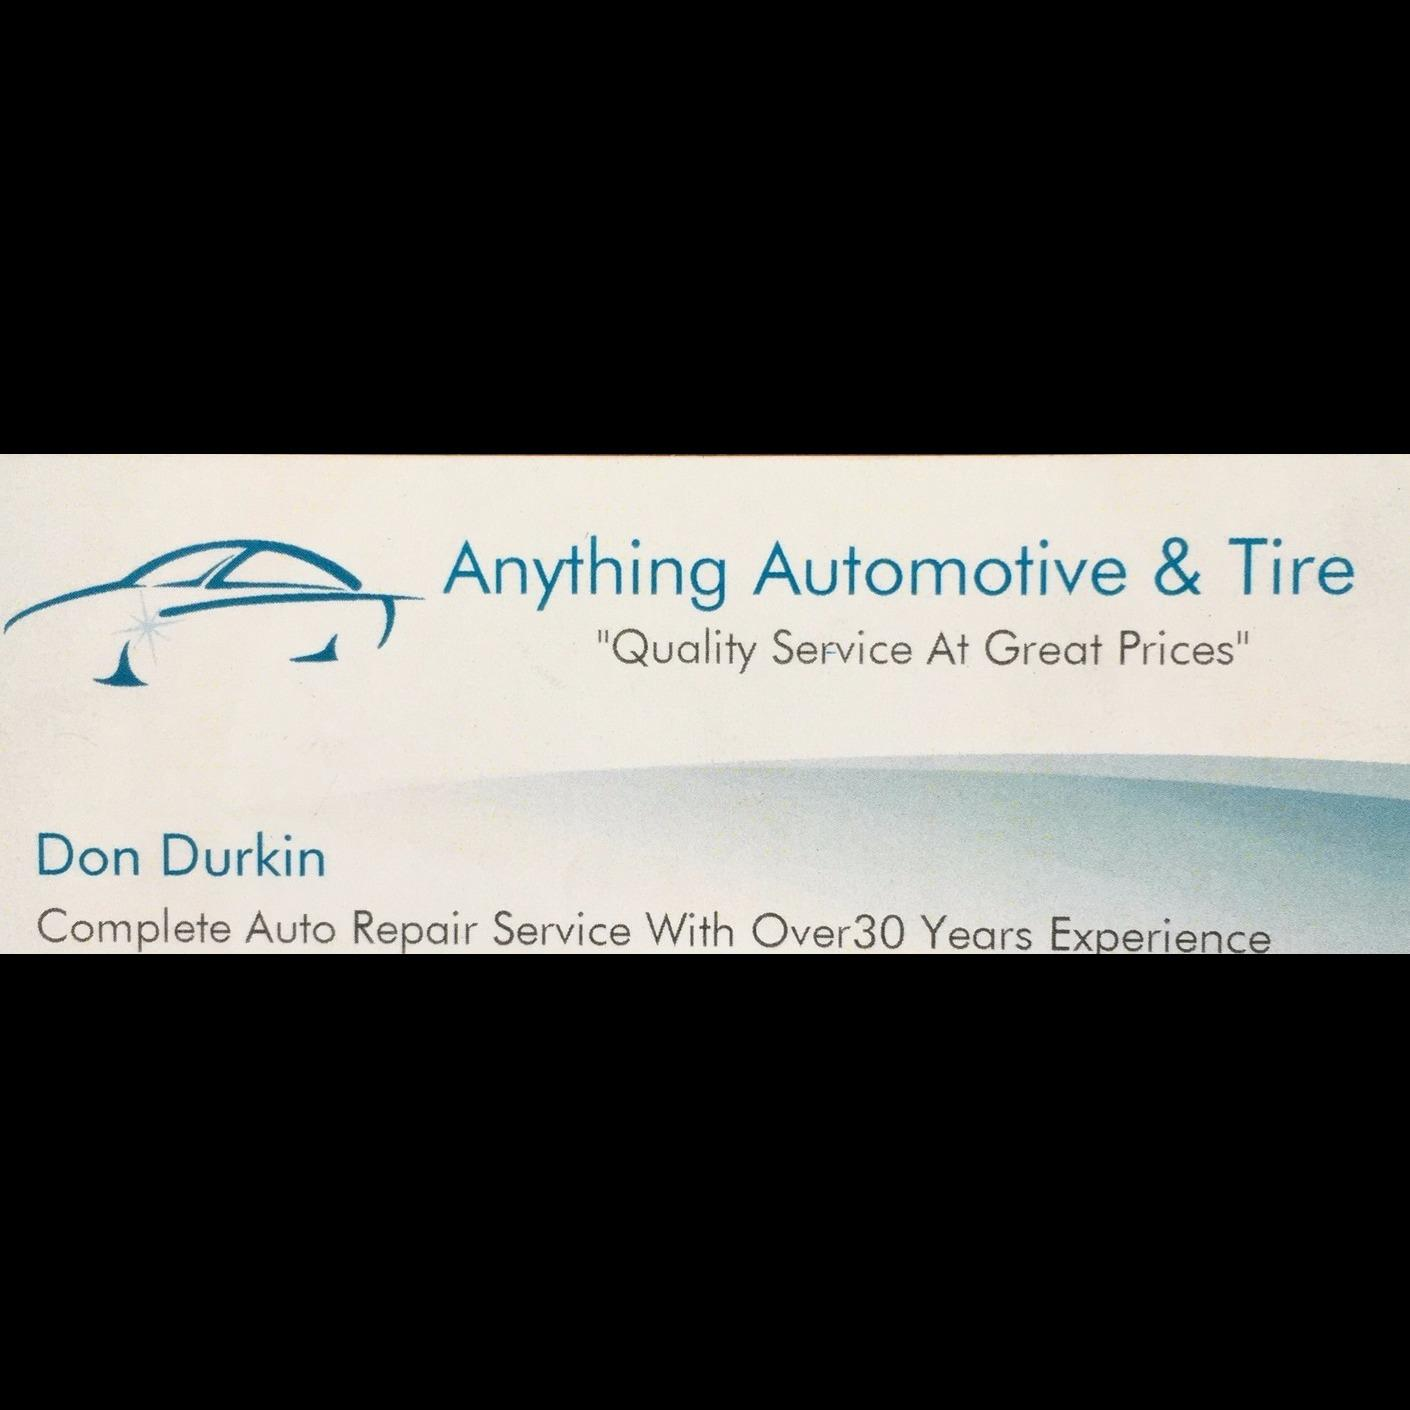 Auto Repair Shop in NY Amsterdam 12010 Anything Automotive & Tire 369  W Main St  (518)843-1234